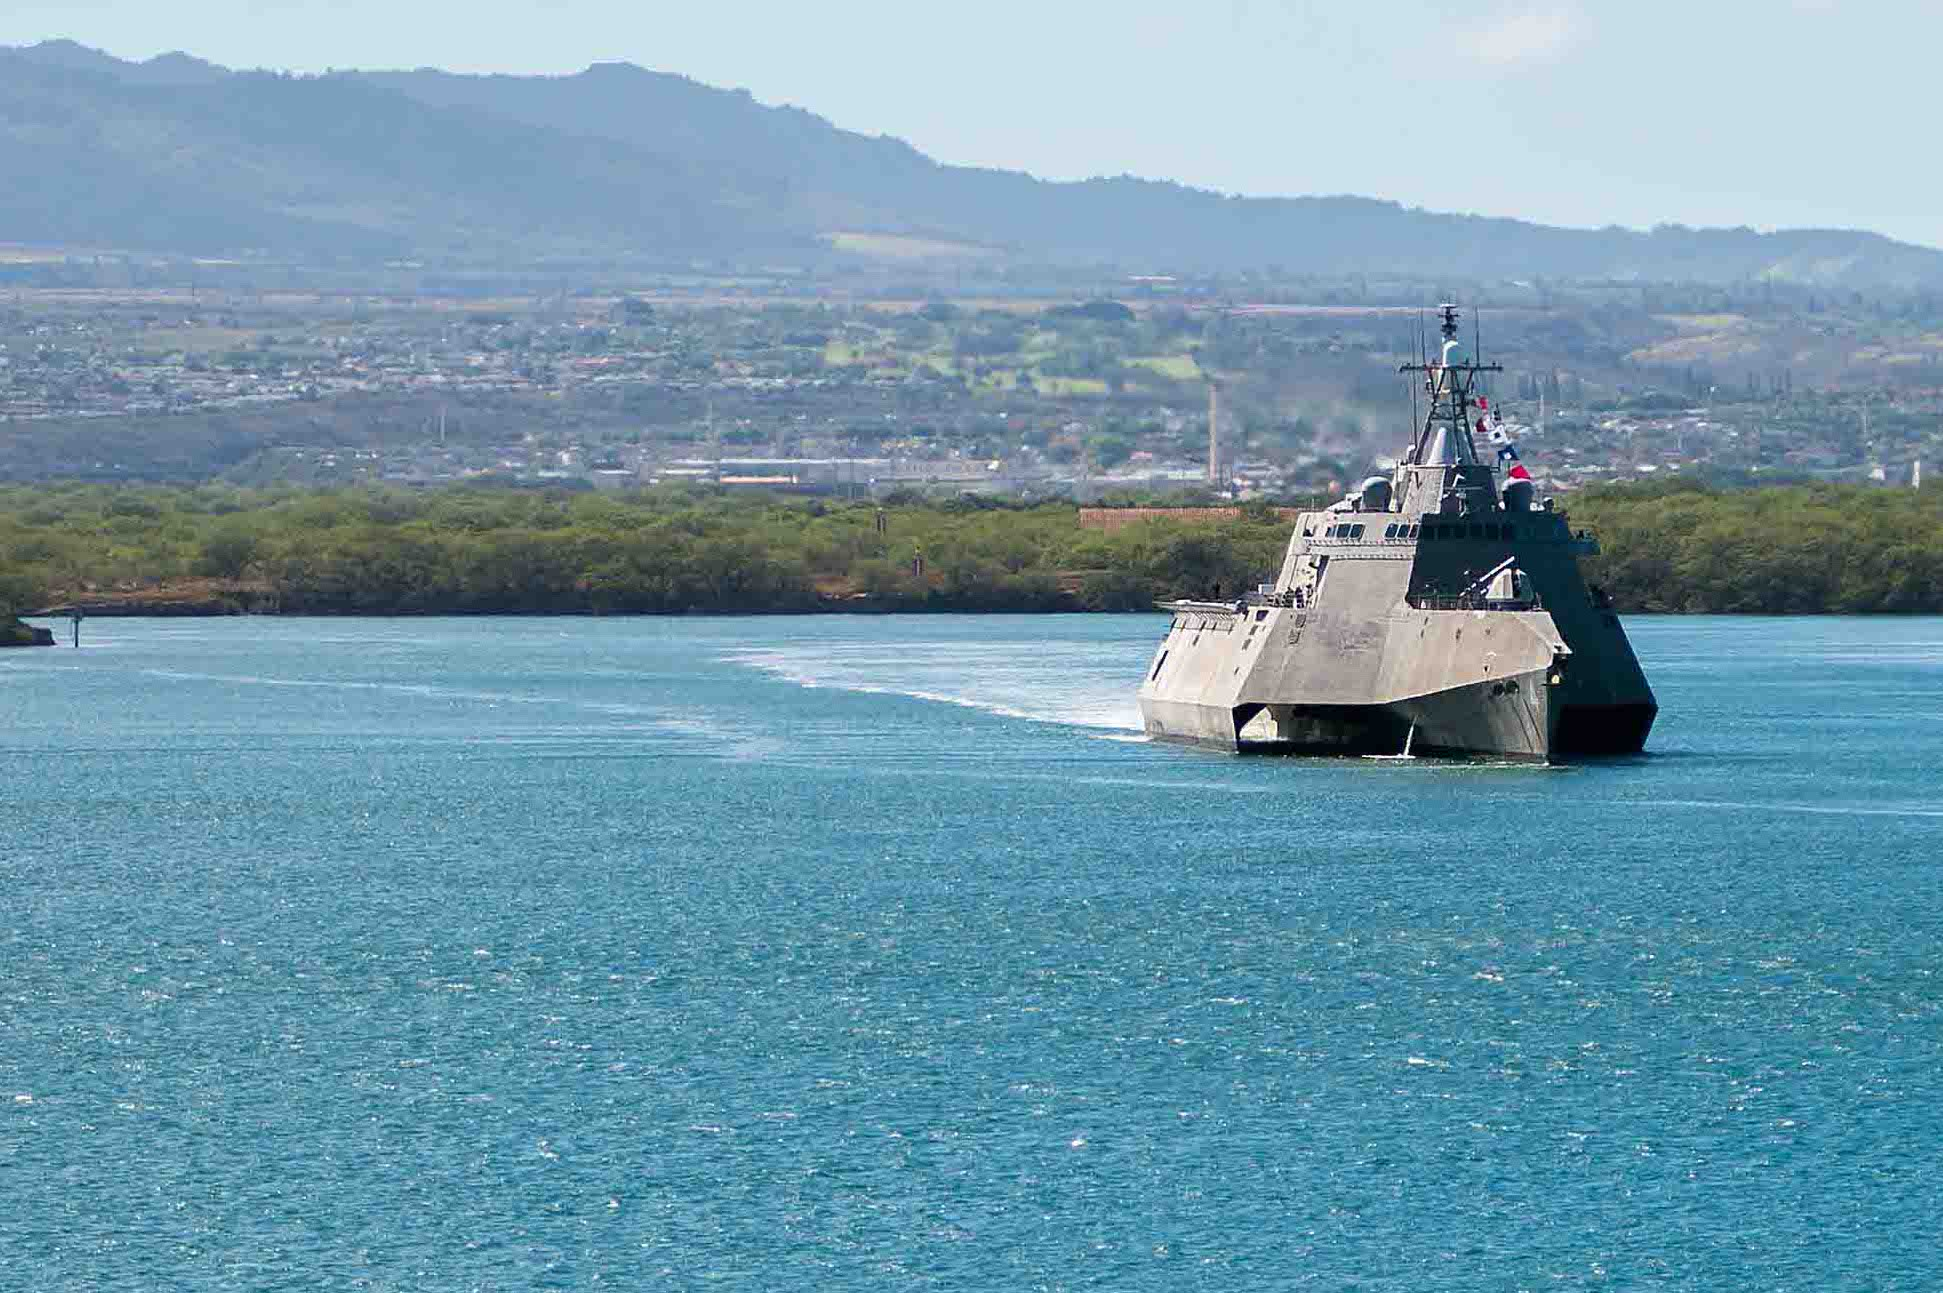 Littoral Combat Ship Sailors to Take on Greater Maintenance